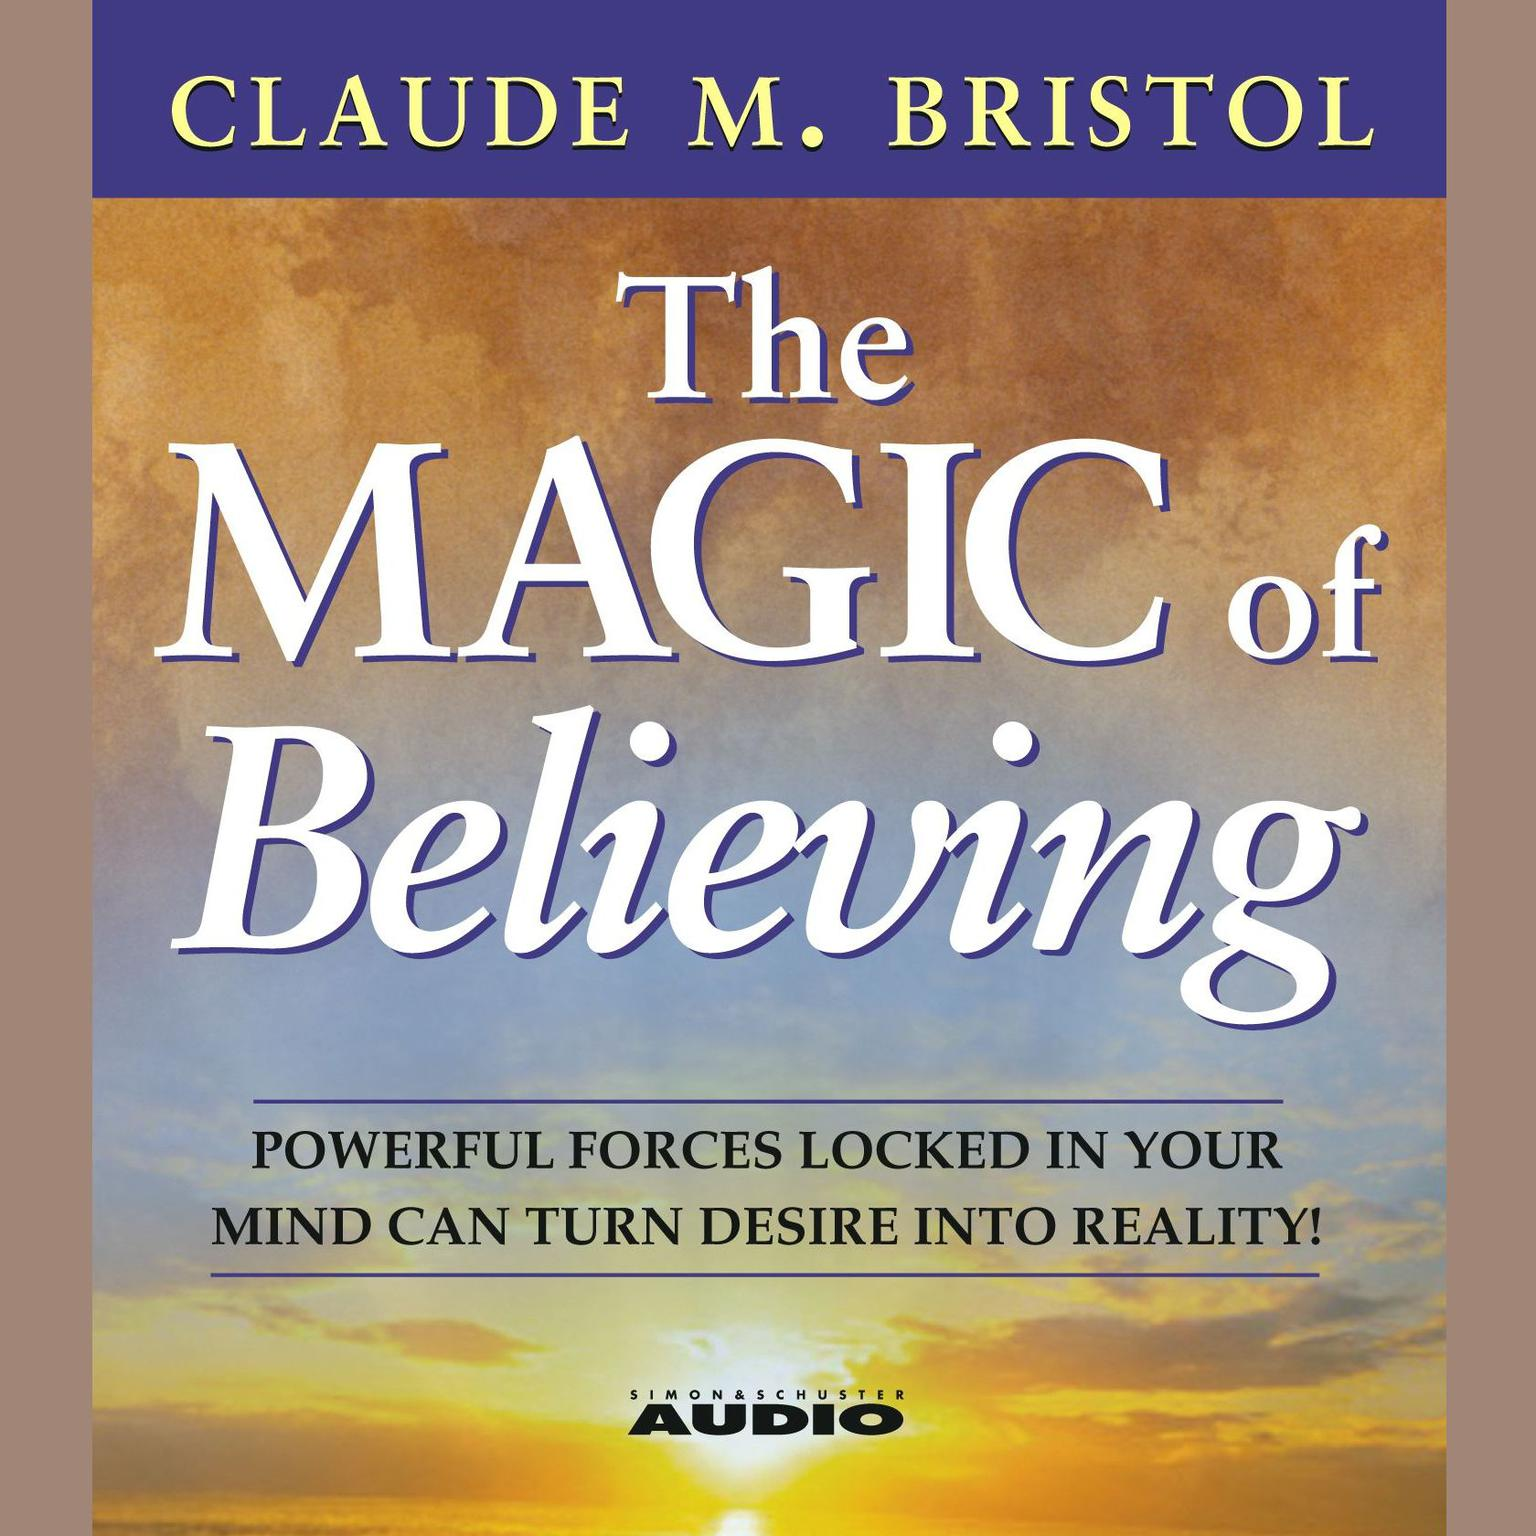 Printable The Magic Of Believing Audiobook Cover Art